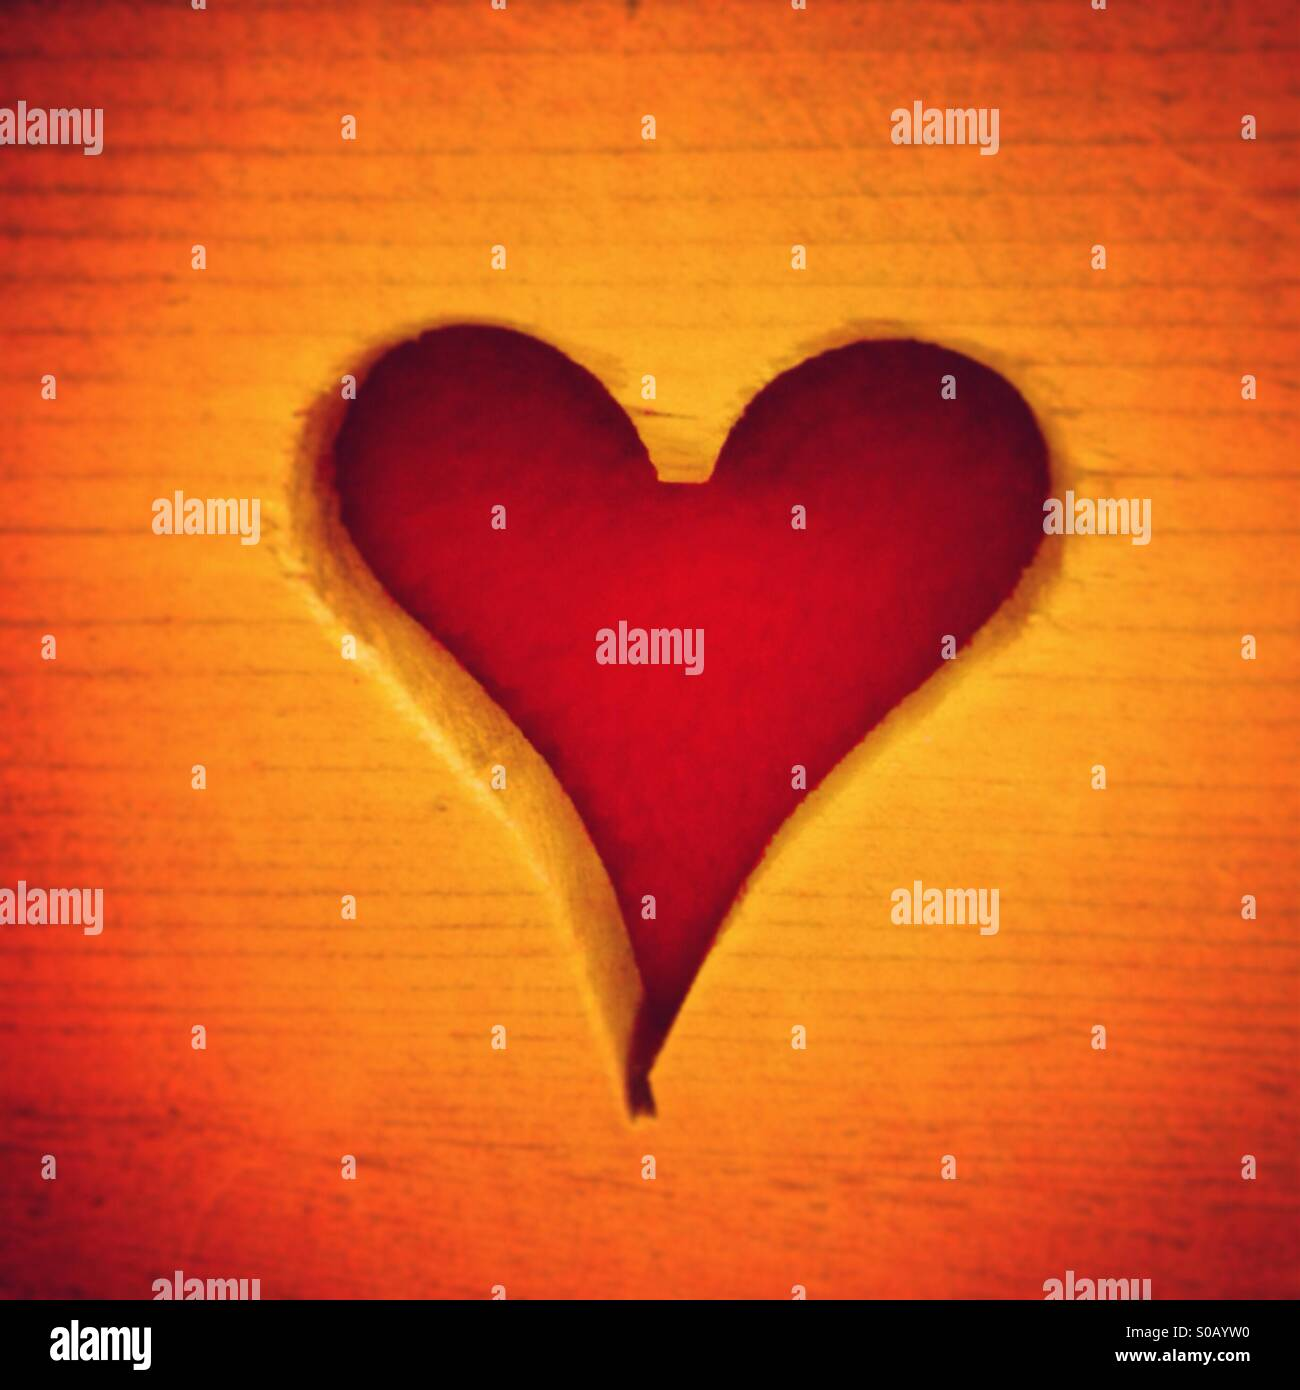 Saint-Valentin Photo Stock